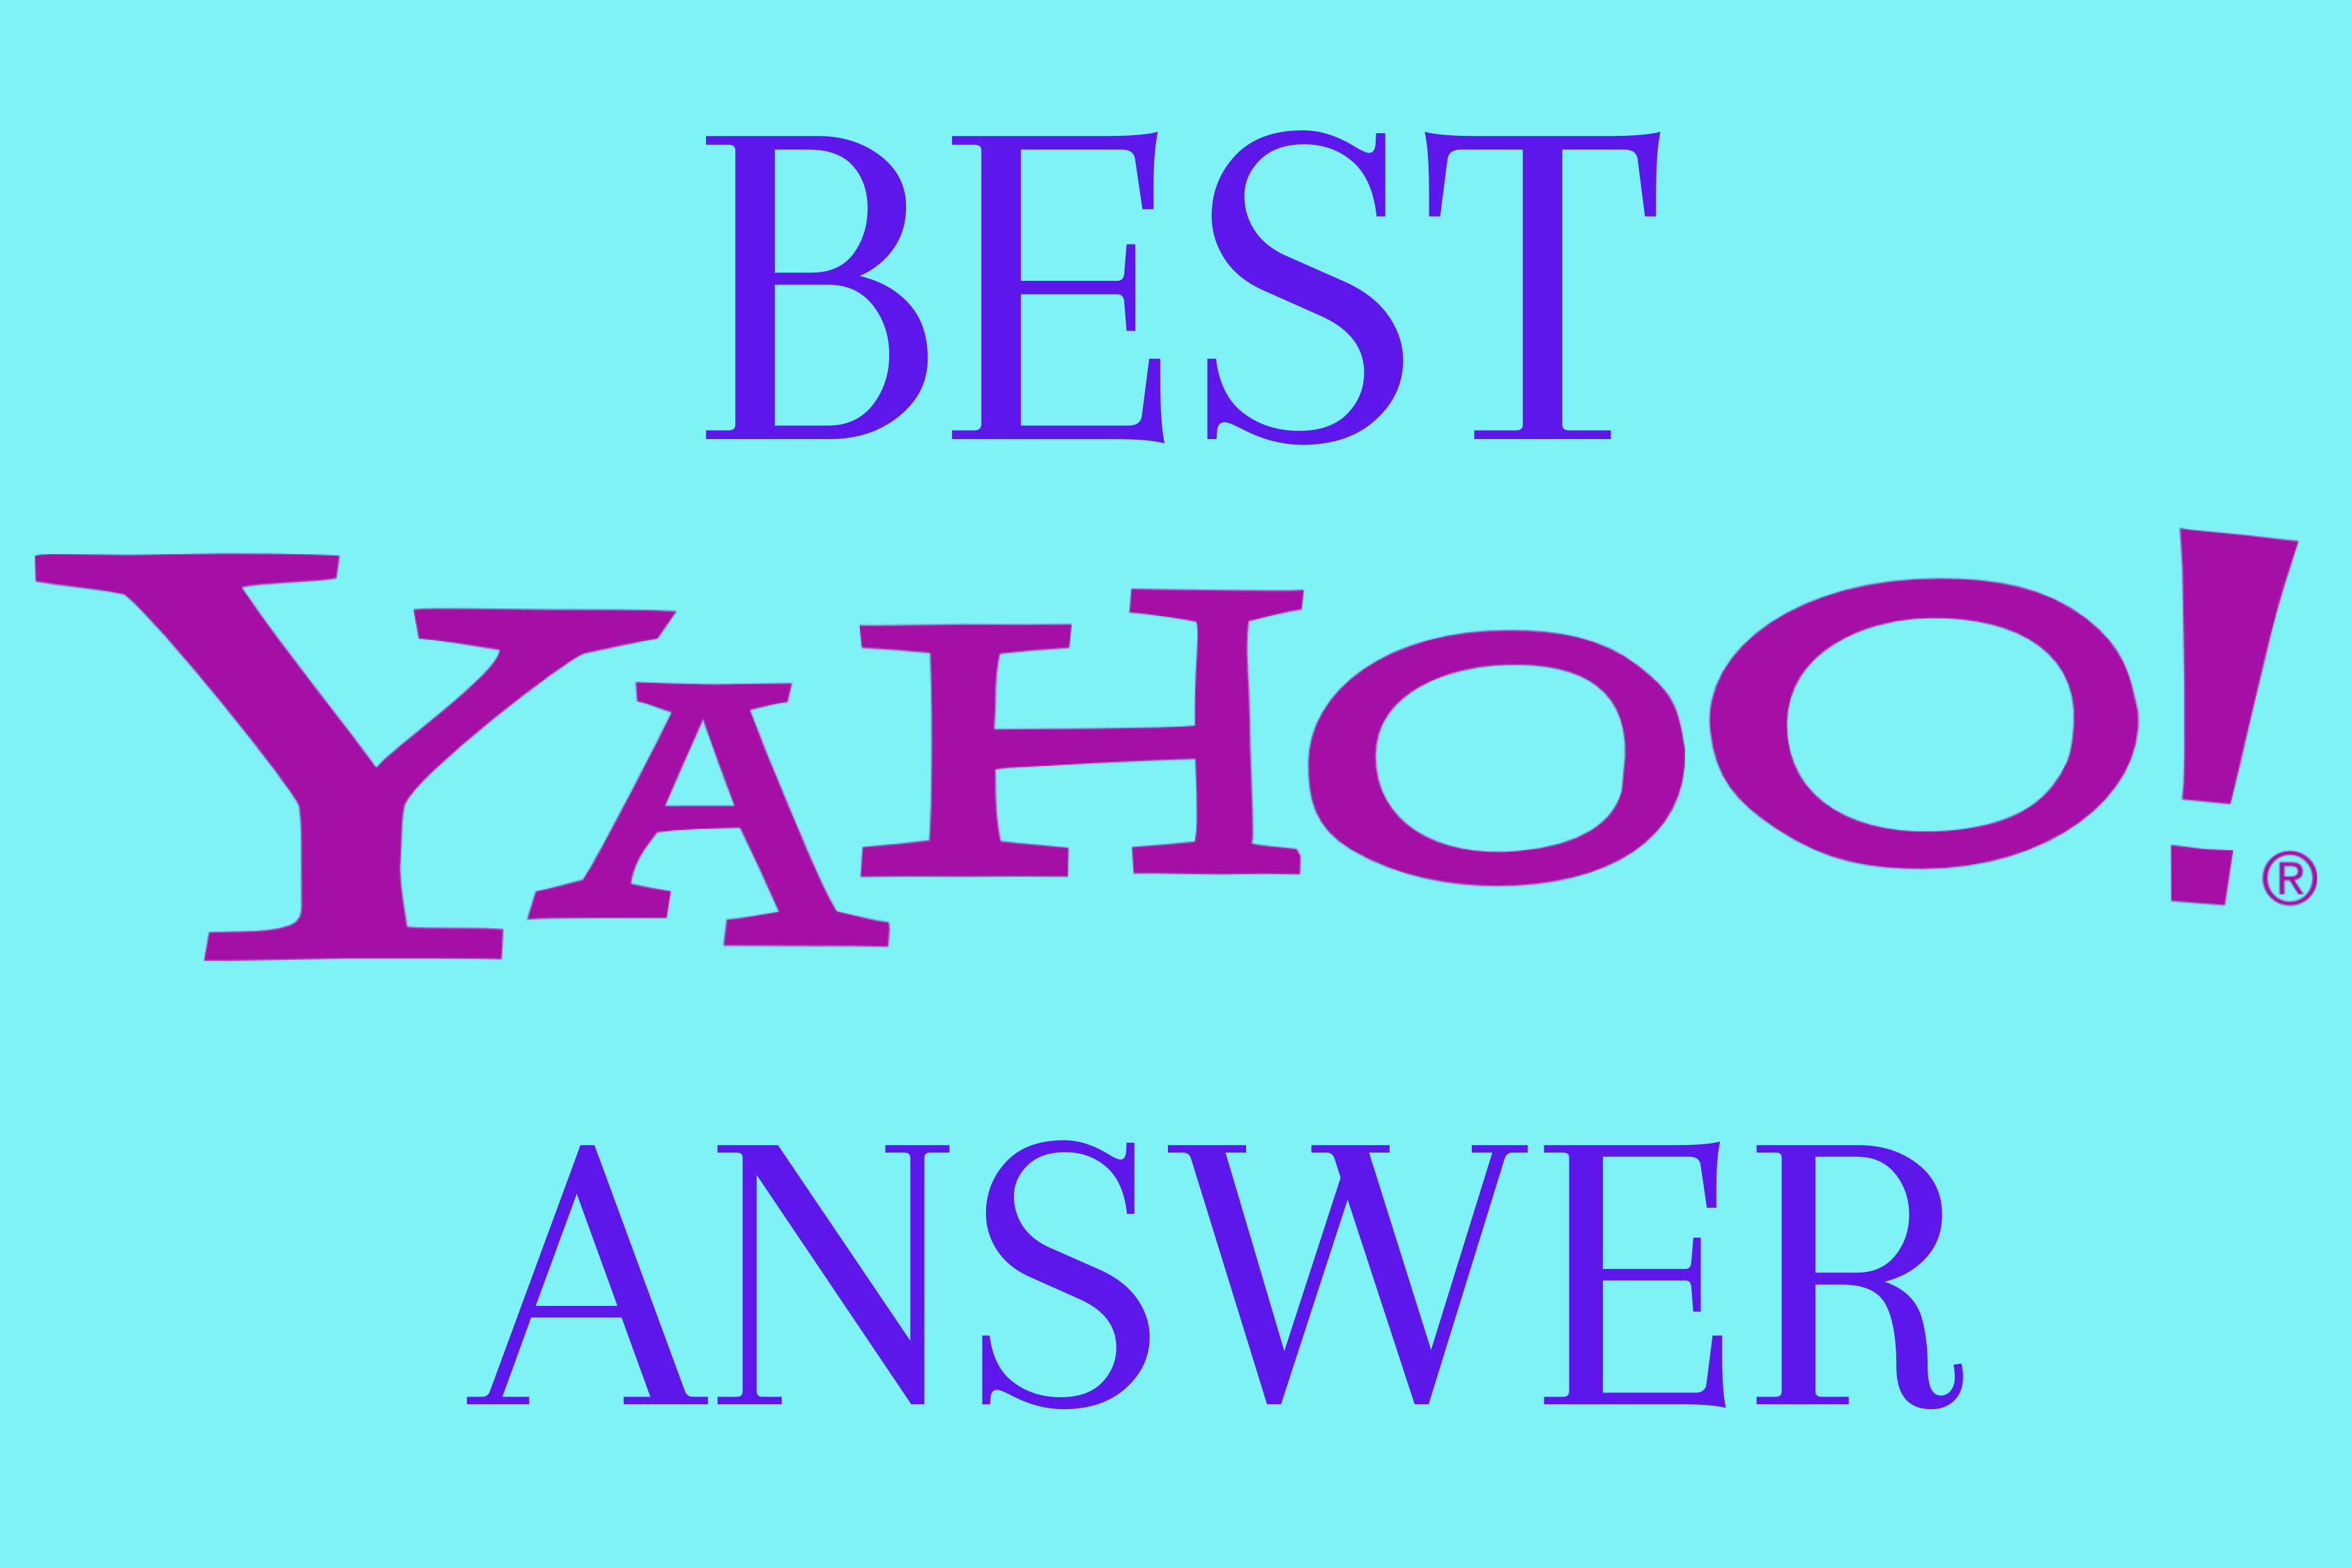 Grow Up Your website 10 High Quality Yahoo answers with your URL and KEYWORDS From Level 3 Account